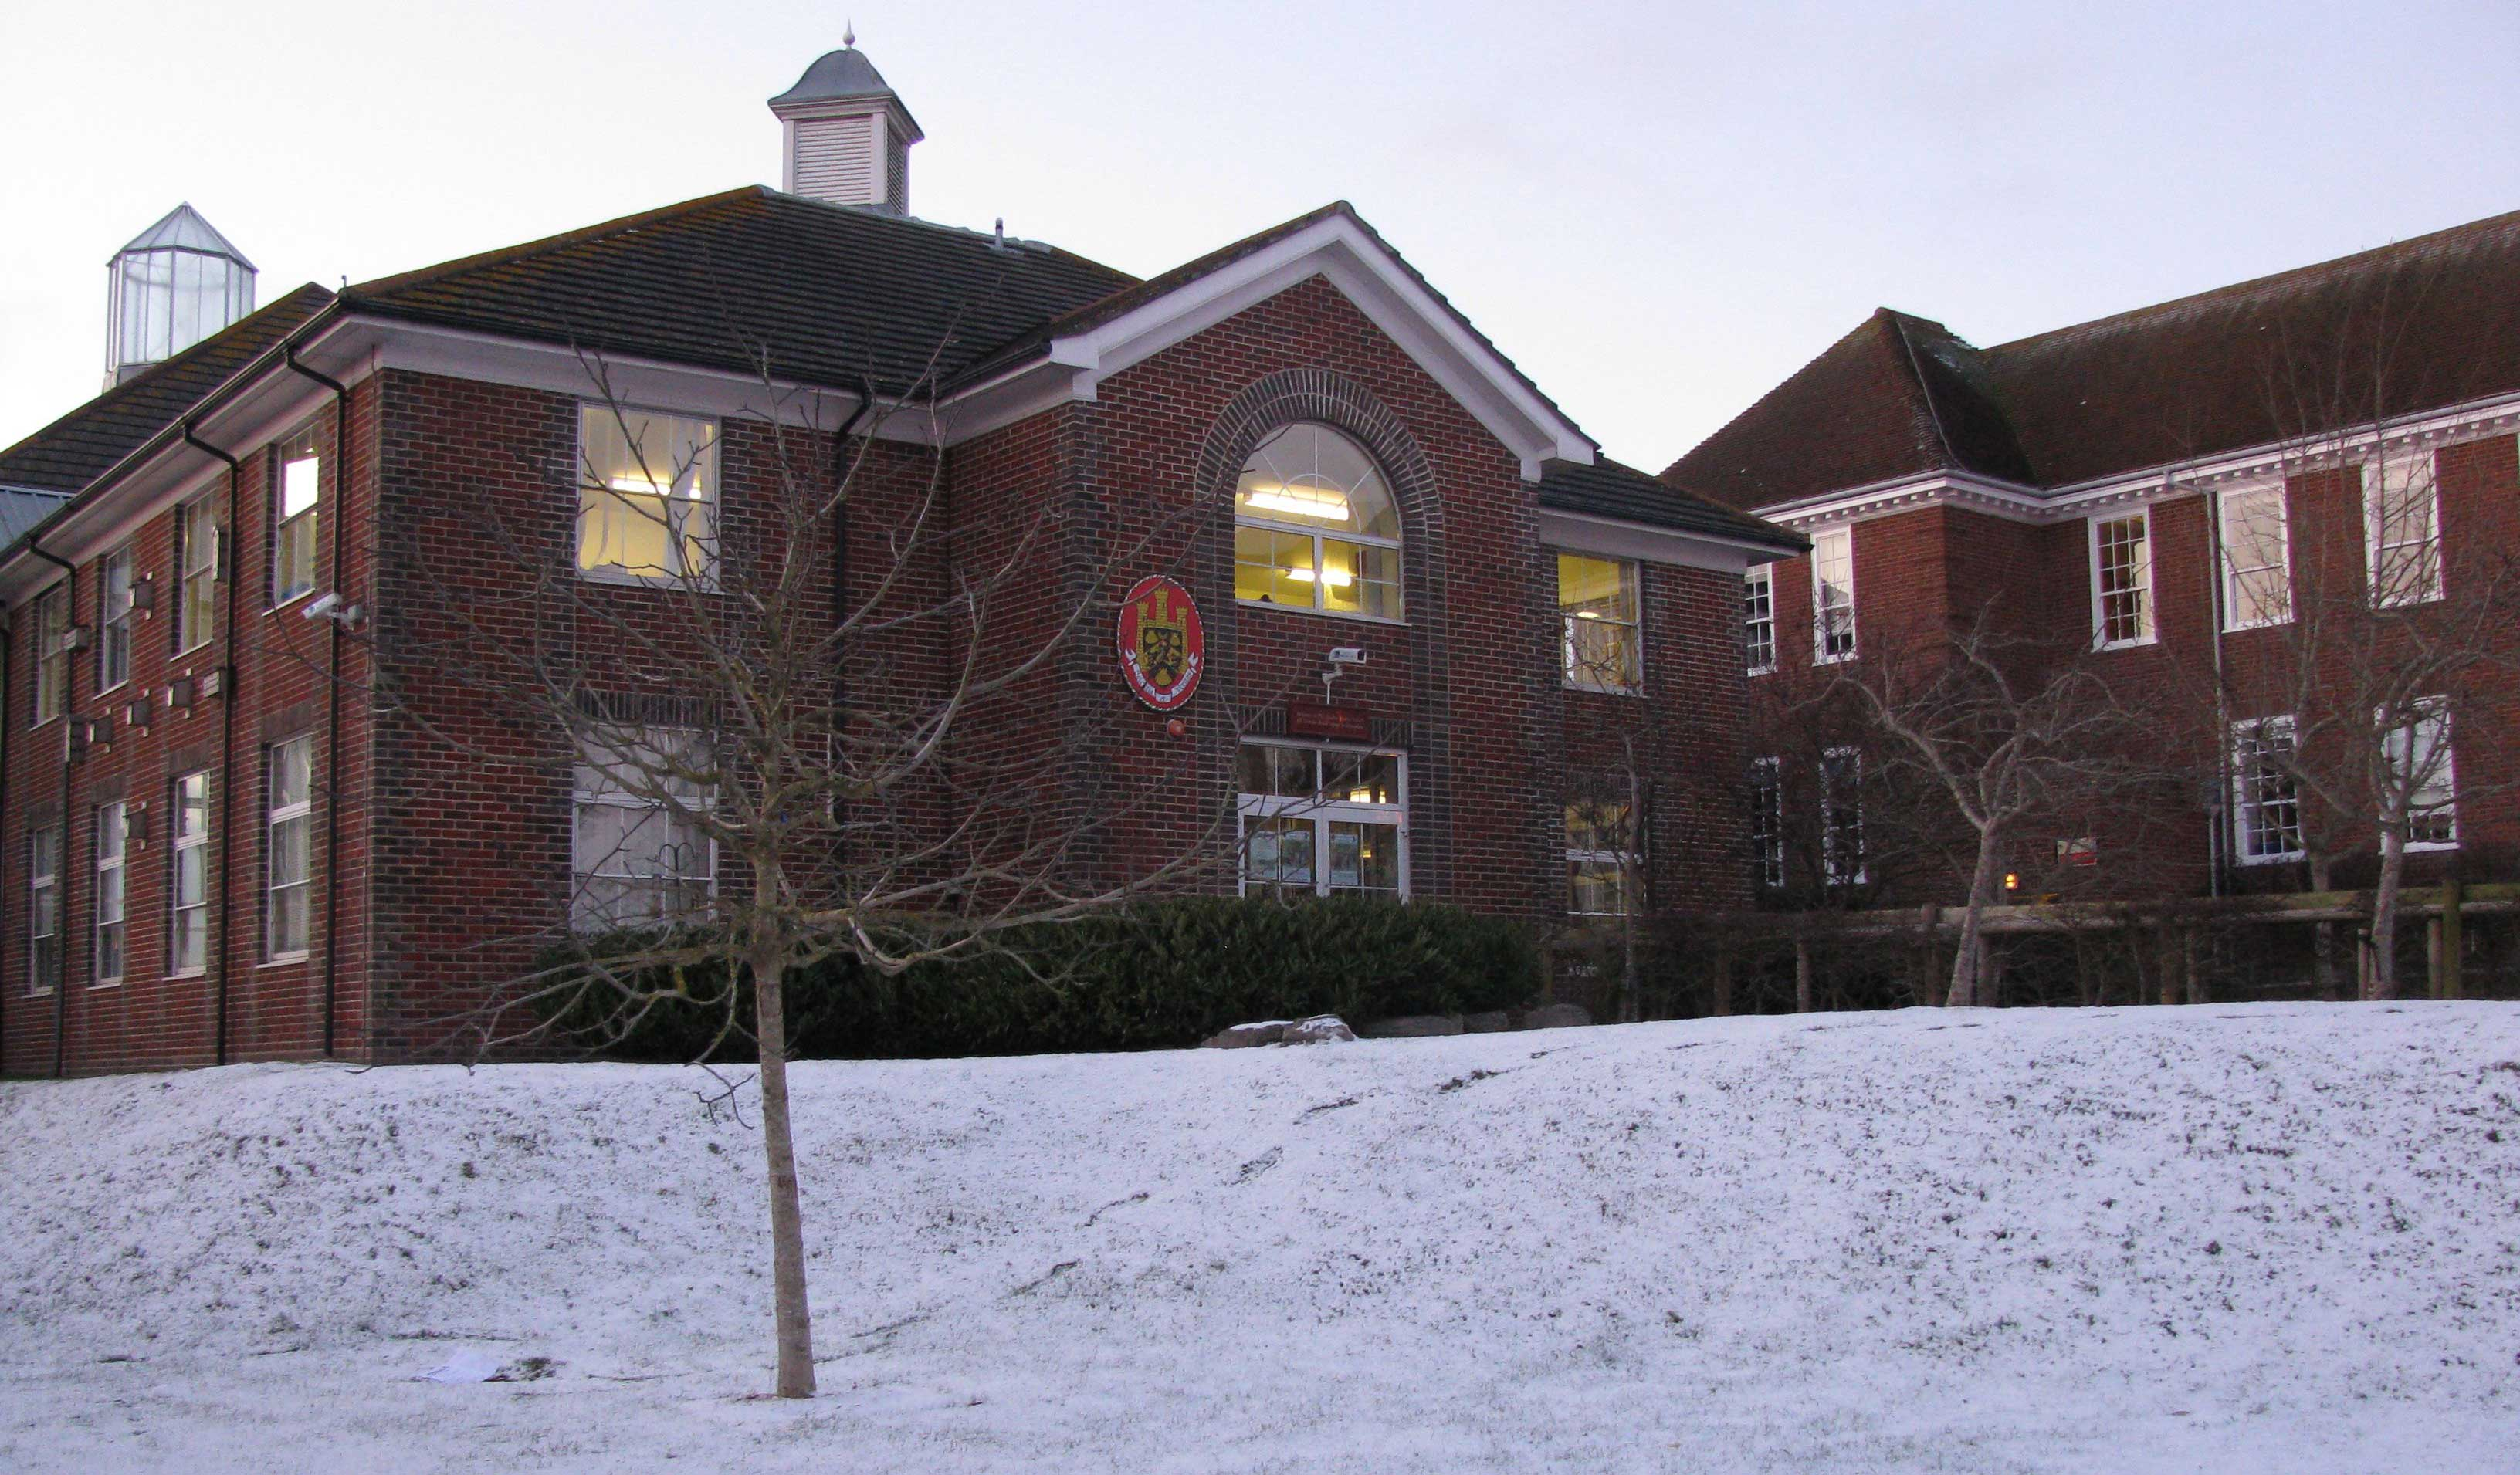 Snow at The Thomas Hardye School